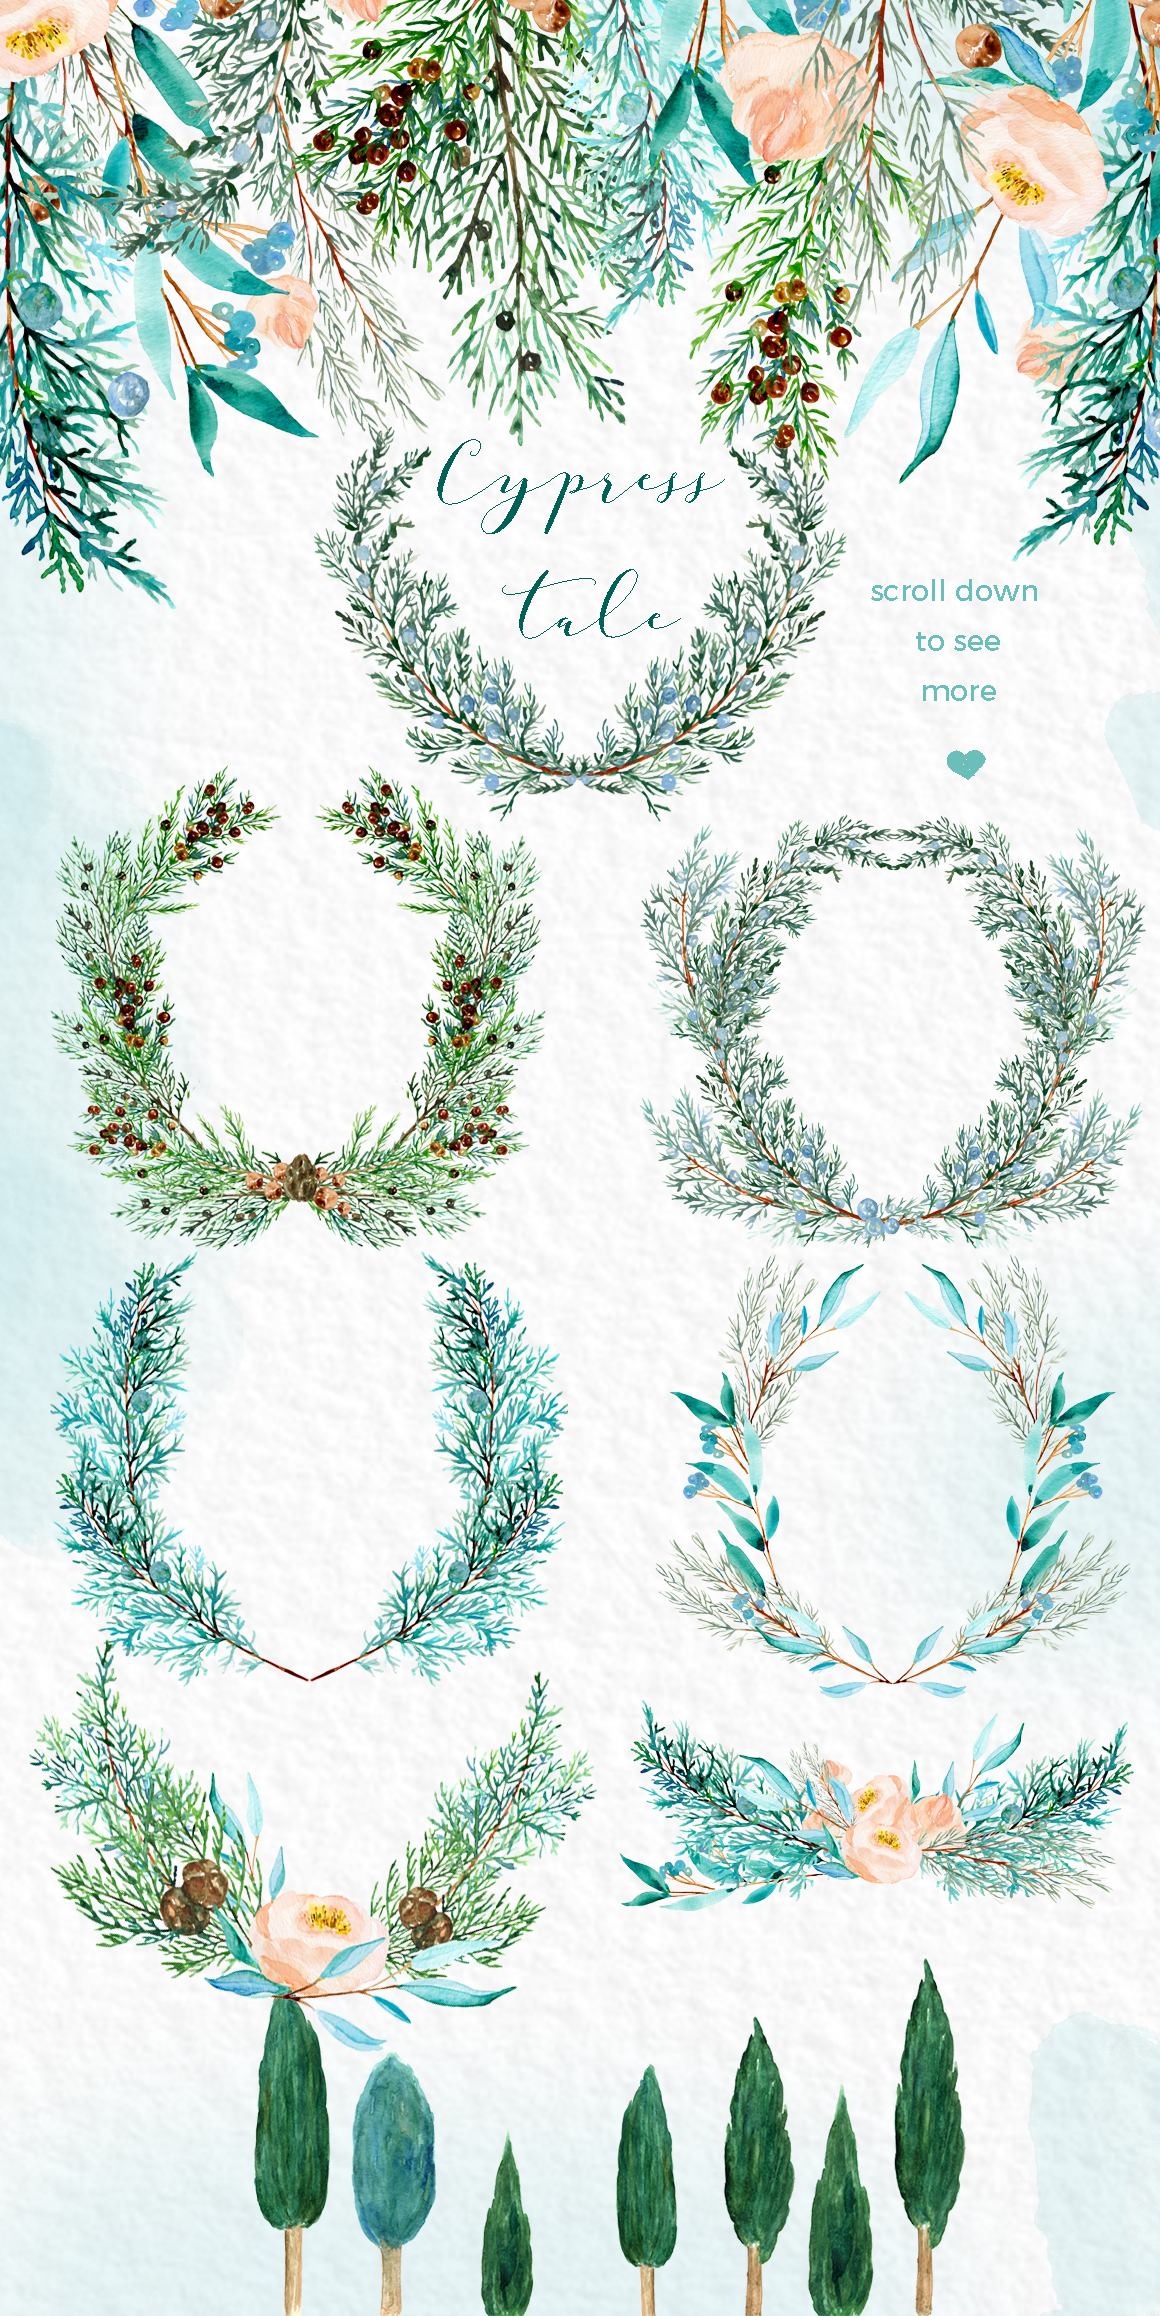 Cypress tale. Watercolor clipart. Cypress christmas branches example image 12